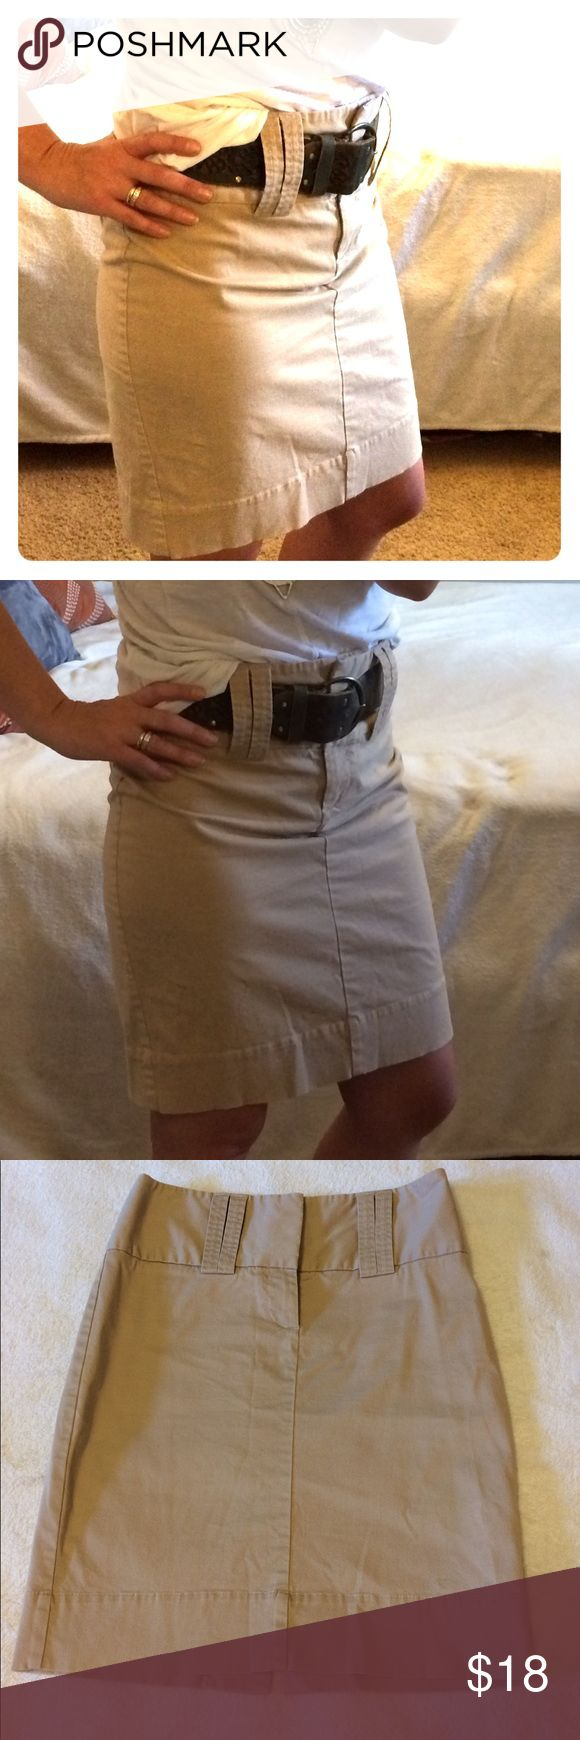 """The Limited khaki pencil skirt The Limited khaki pencil skirt. Wide belt loops to add a chunky belt, back center slit. Good condition. Length 21"""". The Limited Skirts Pencil"""